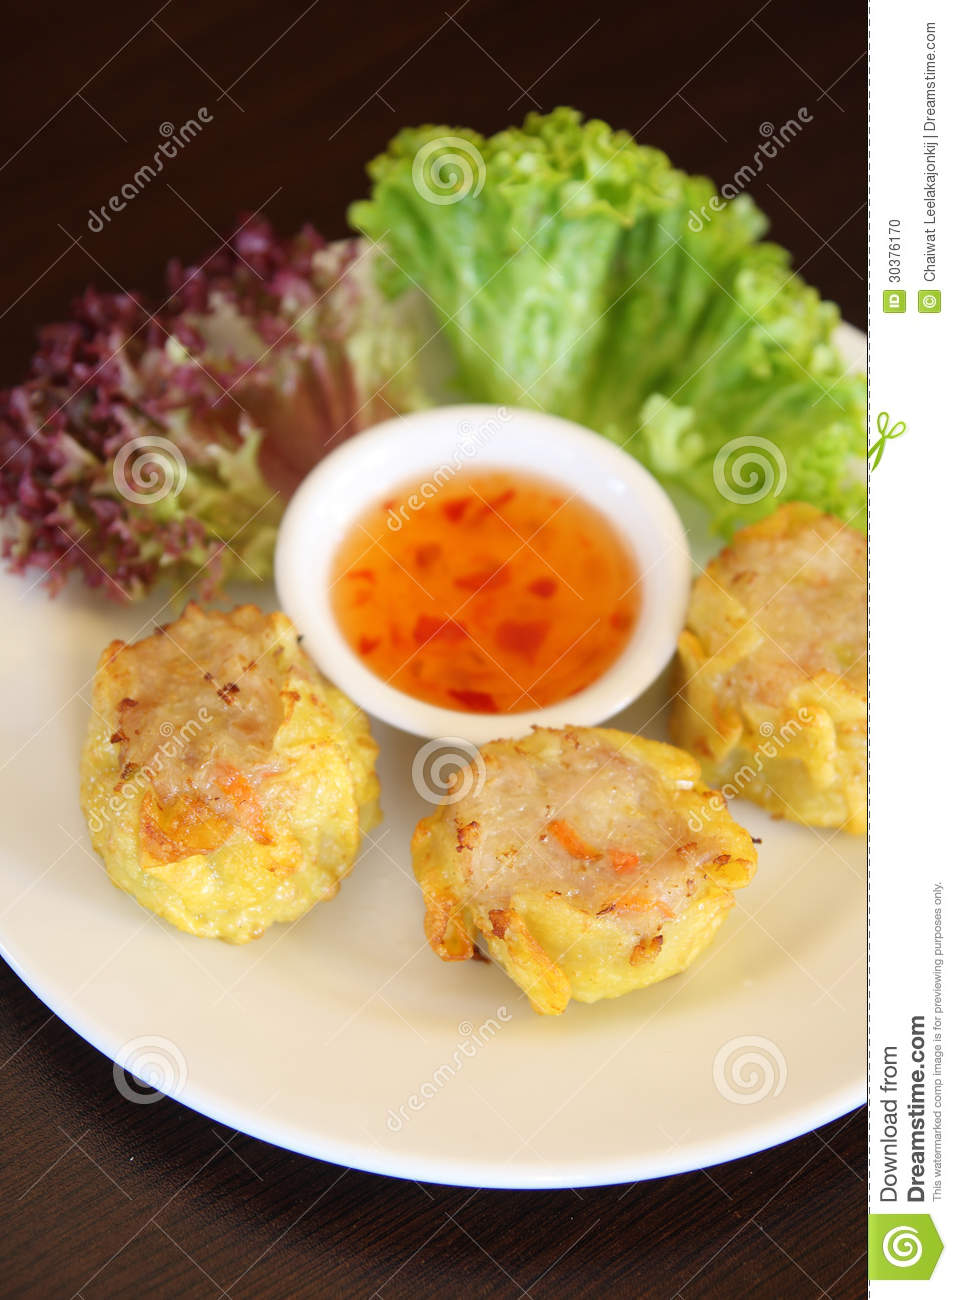 Dim sim dumpling chinese appetizer stock photo image for Appetizer chinese cuisine